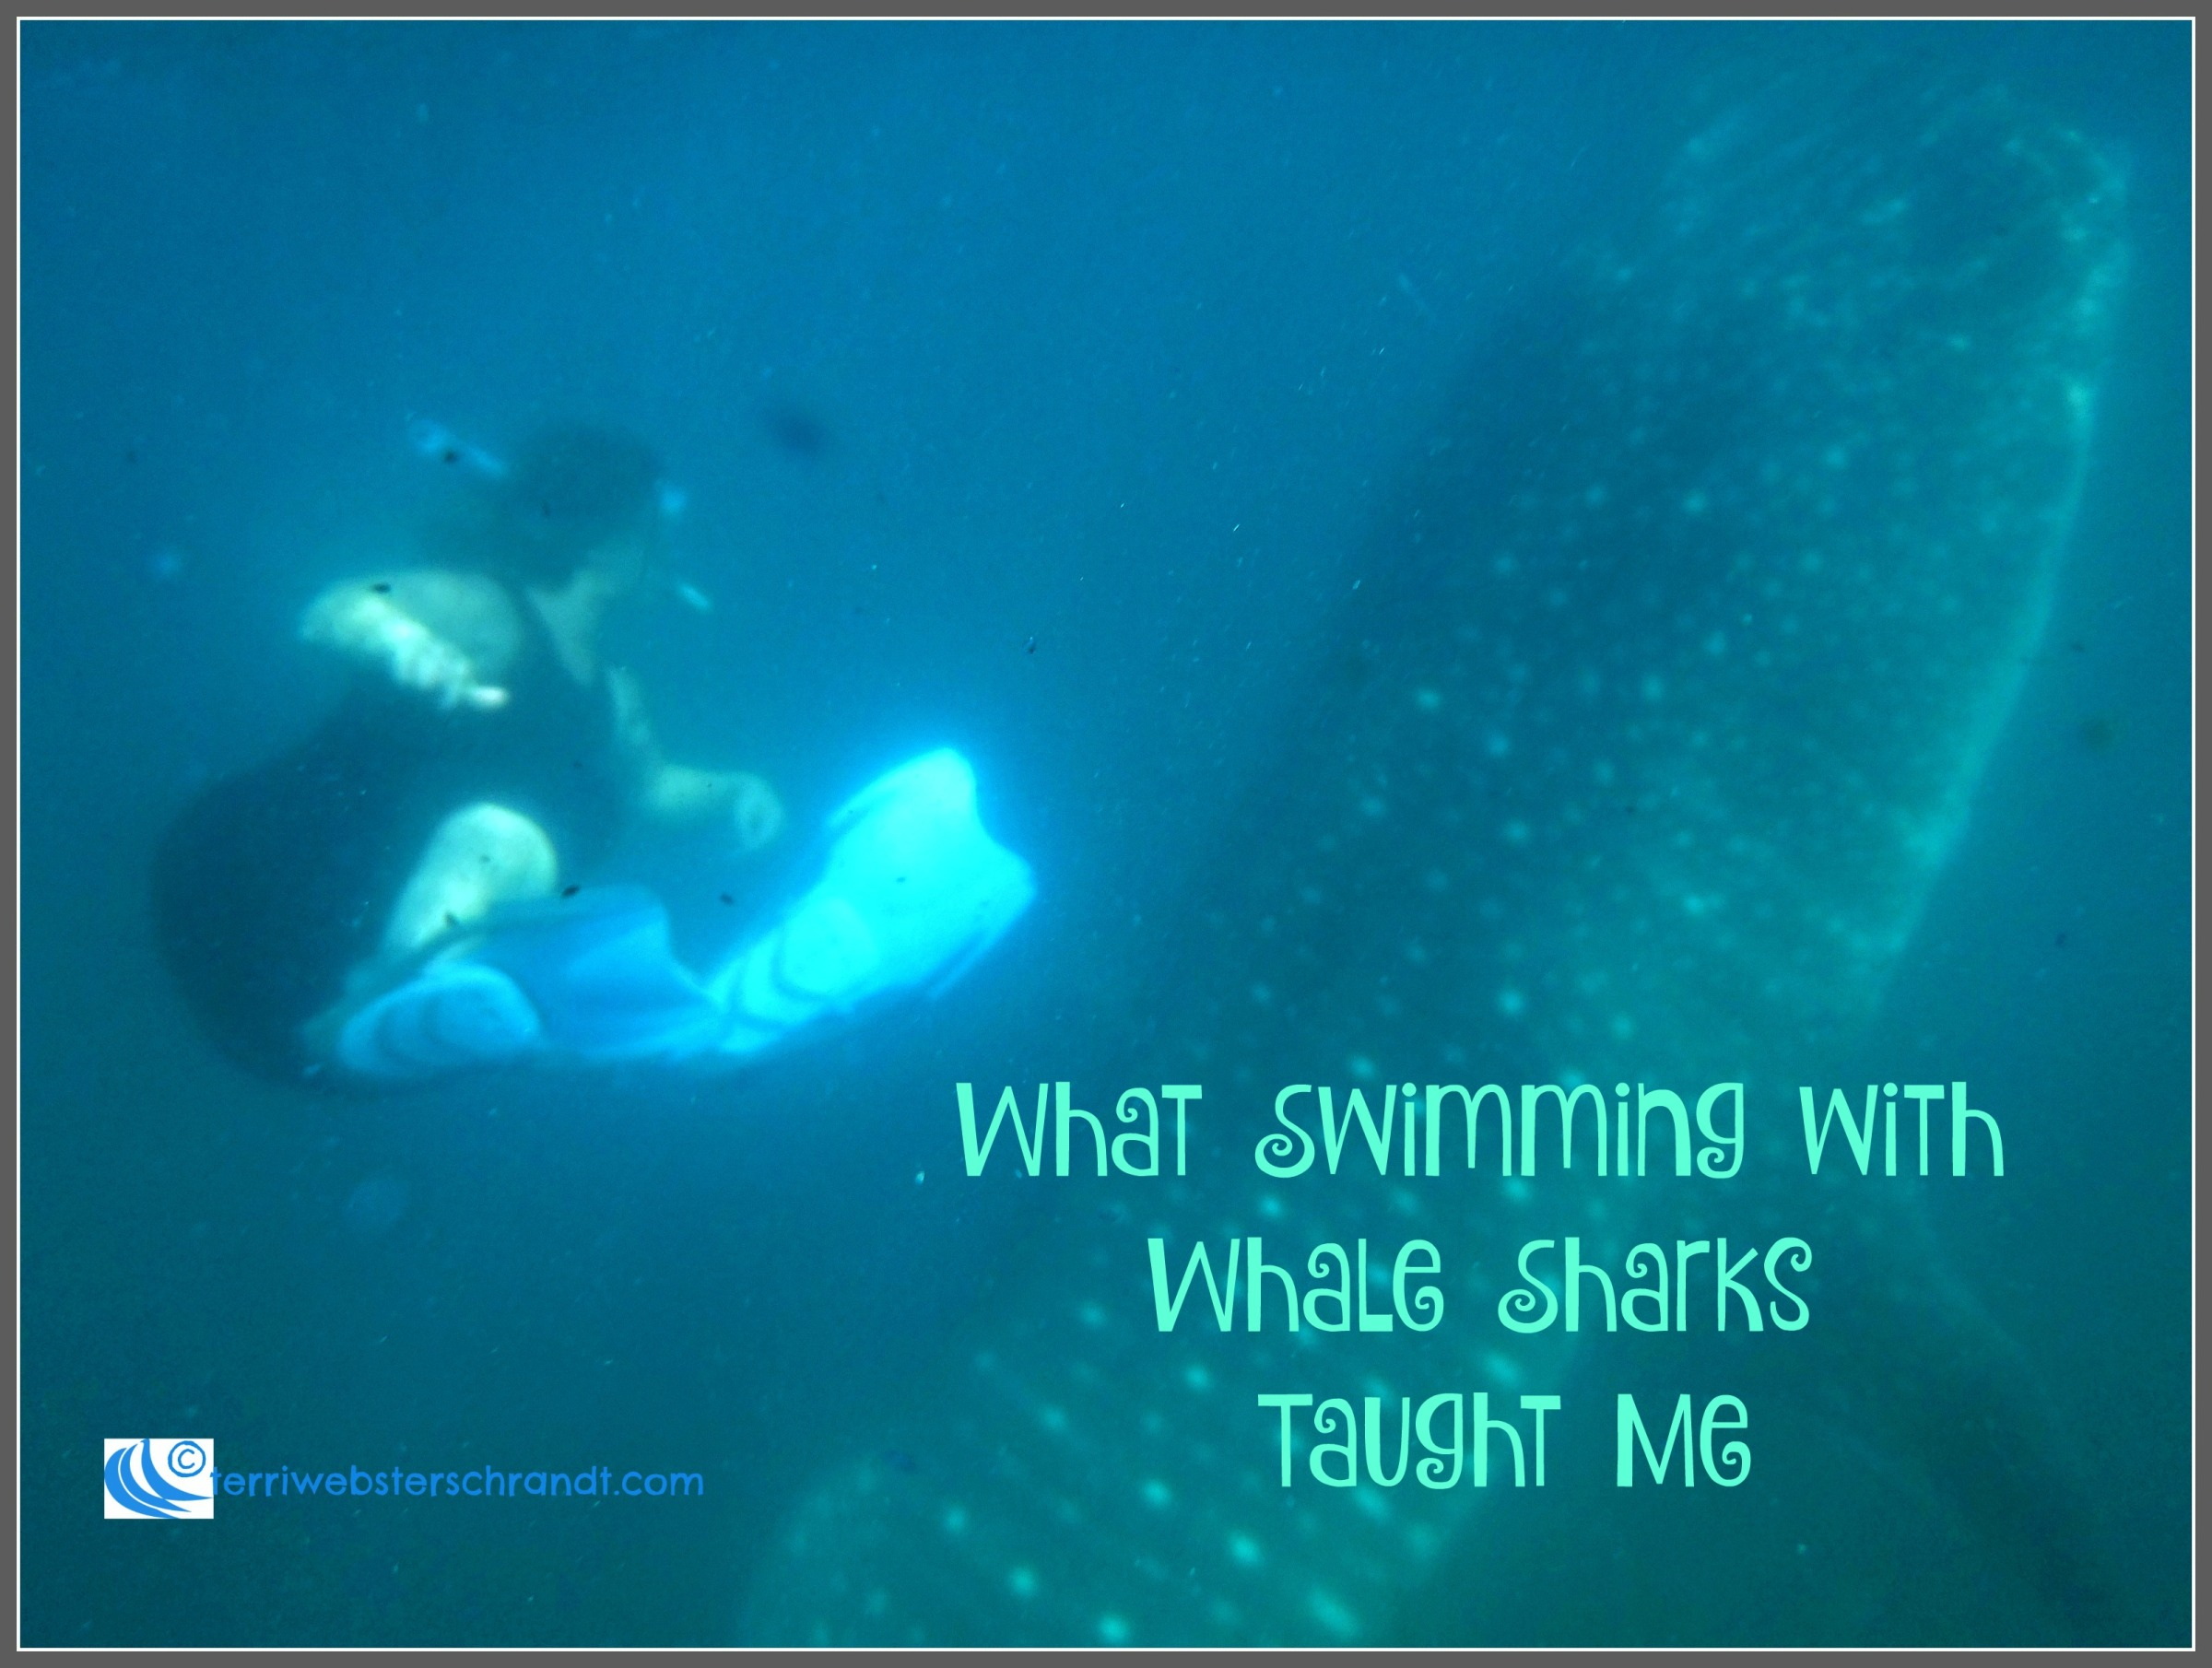 What swimming with whale sharks taught me